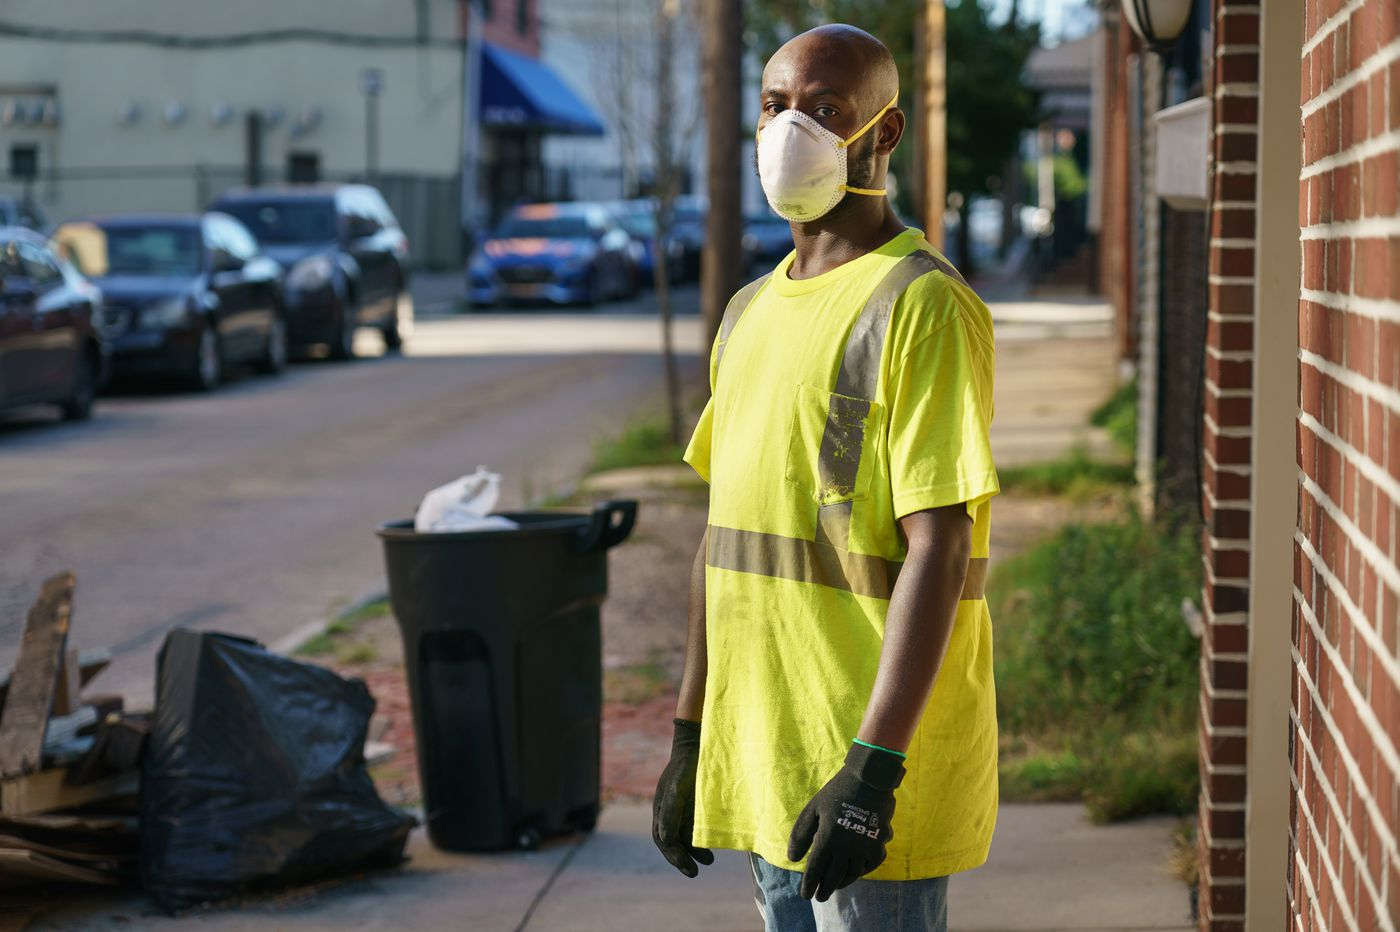 'Ya Fav Trashman' raised $32,000 for PPE for his Philly sanitation colleagues, and his work is gaining national attention